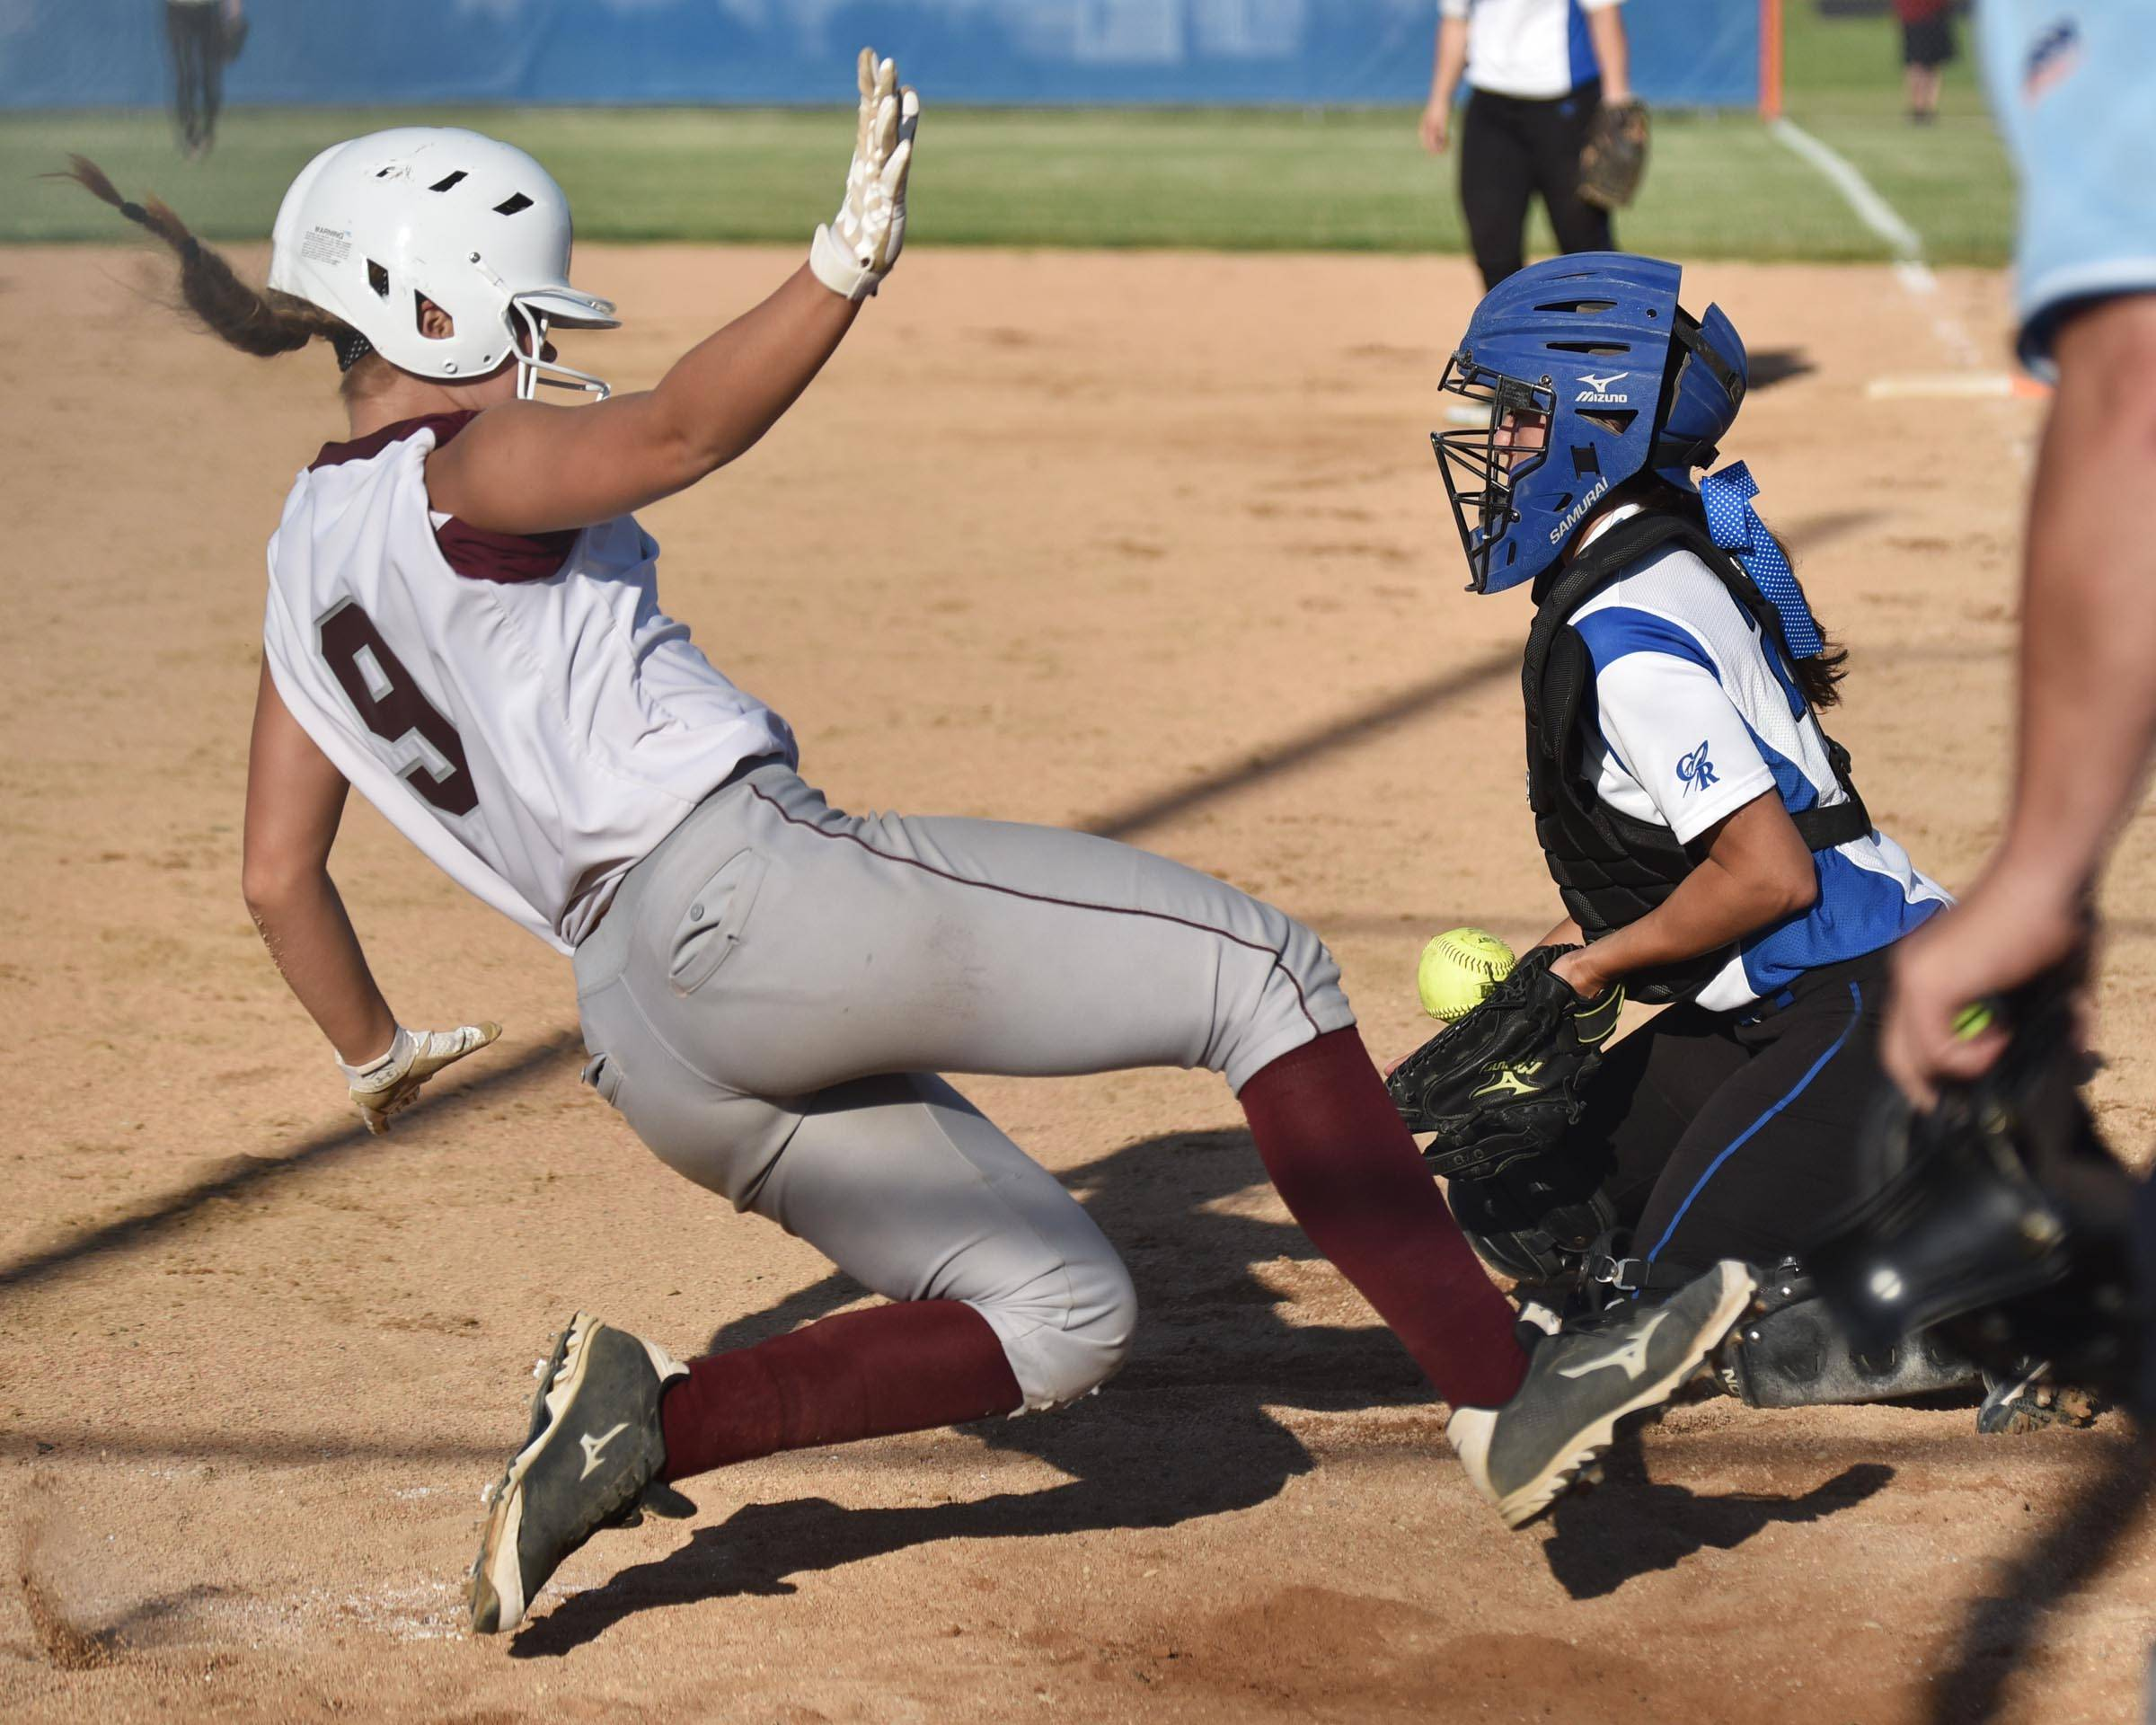 Marengo's Susannah Nawrot scores the only run of the game in the 10th inning as Burlington Central catcher Kelly Wiater tries to handle a late throw Wednesday in the Class 3A Genoa-Kingston sectional semifinal.